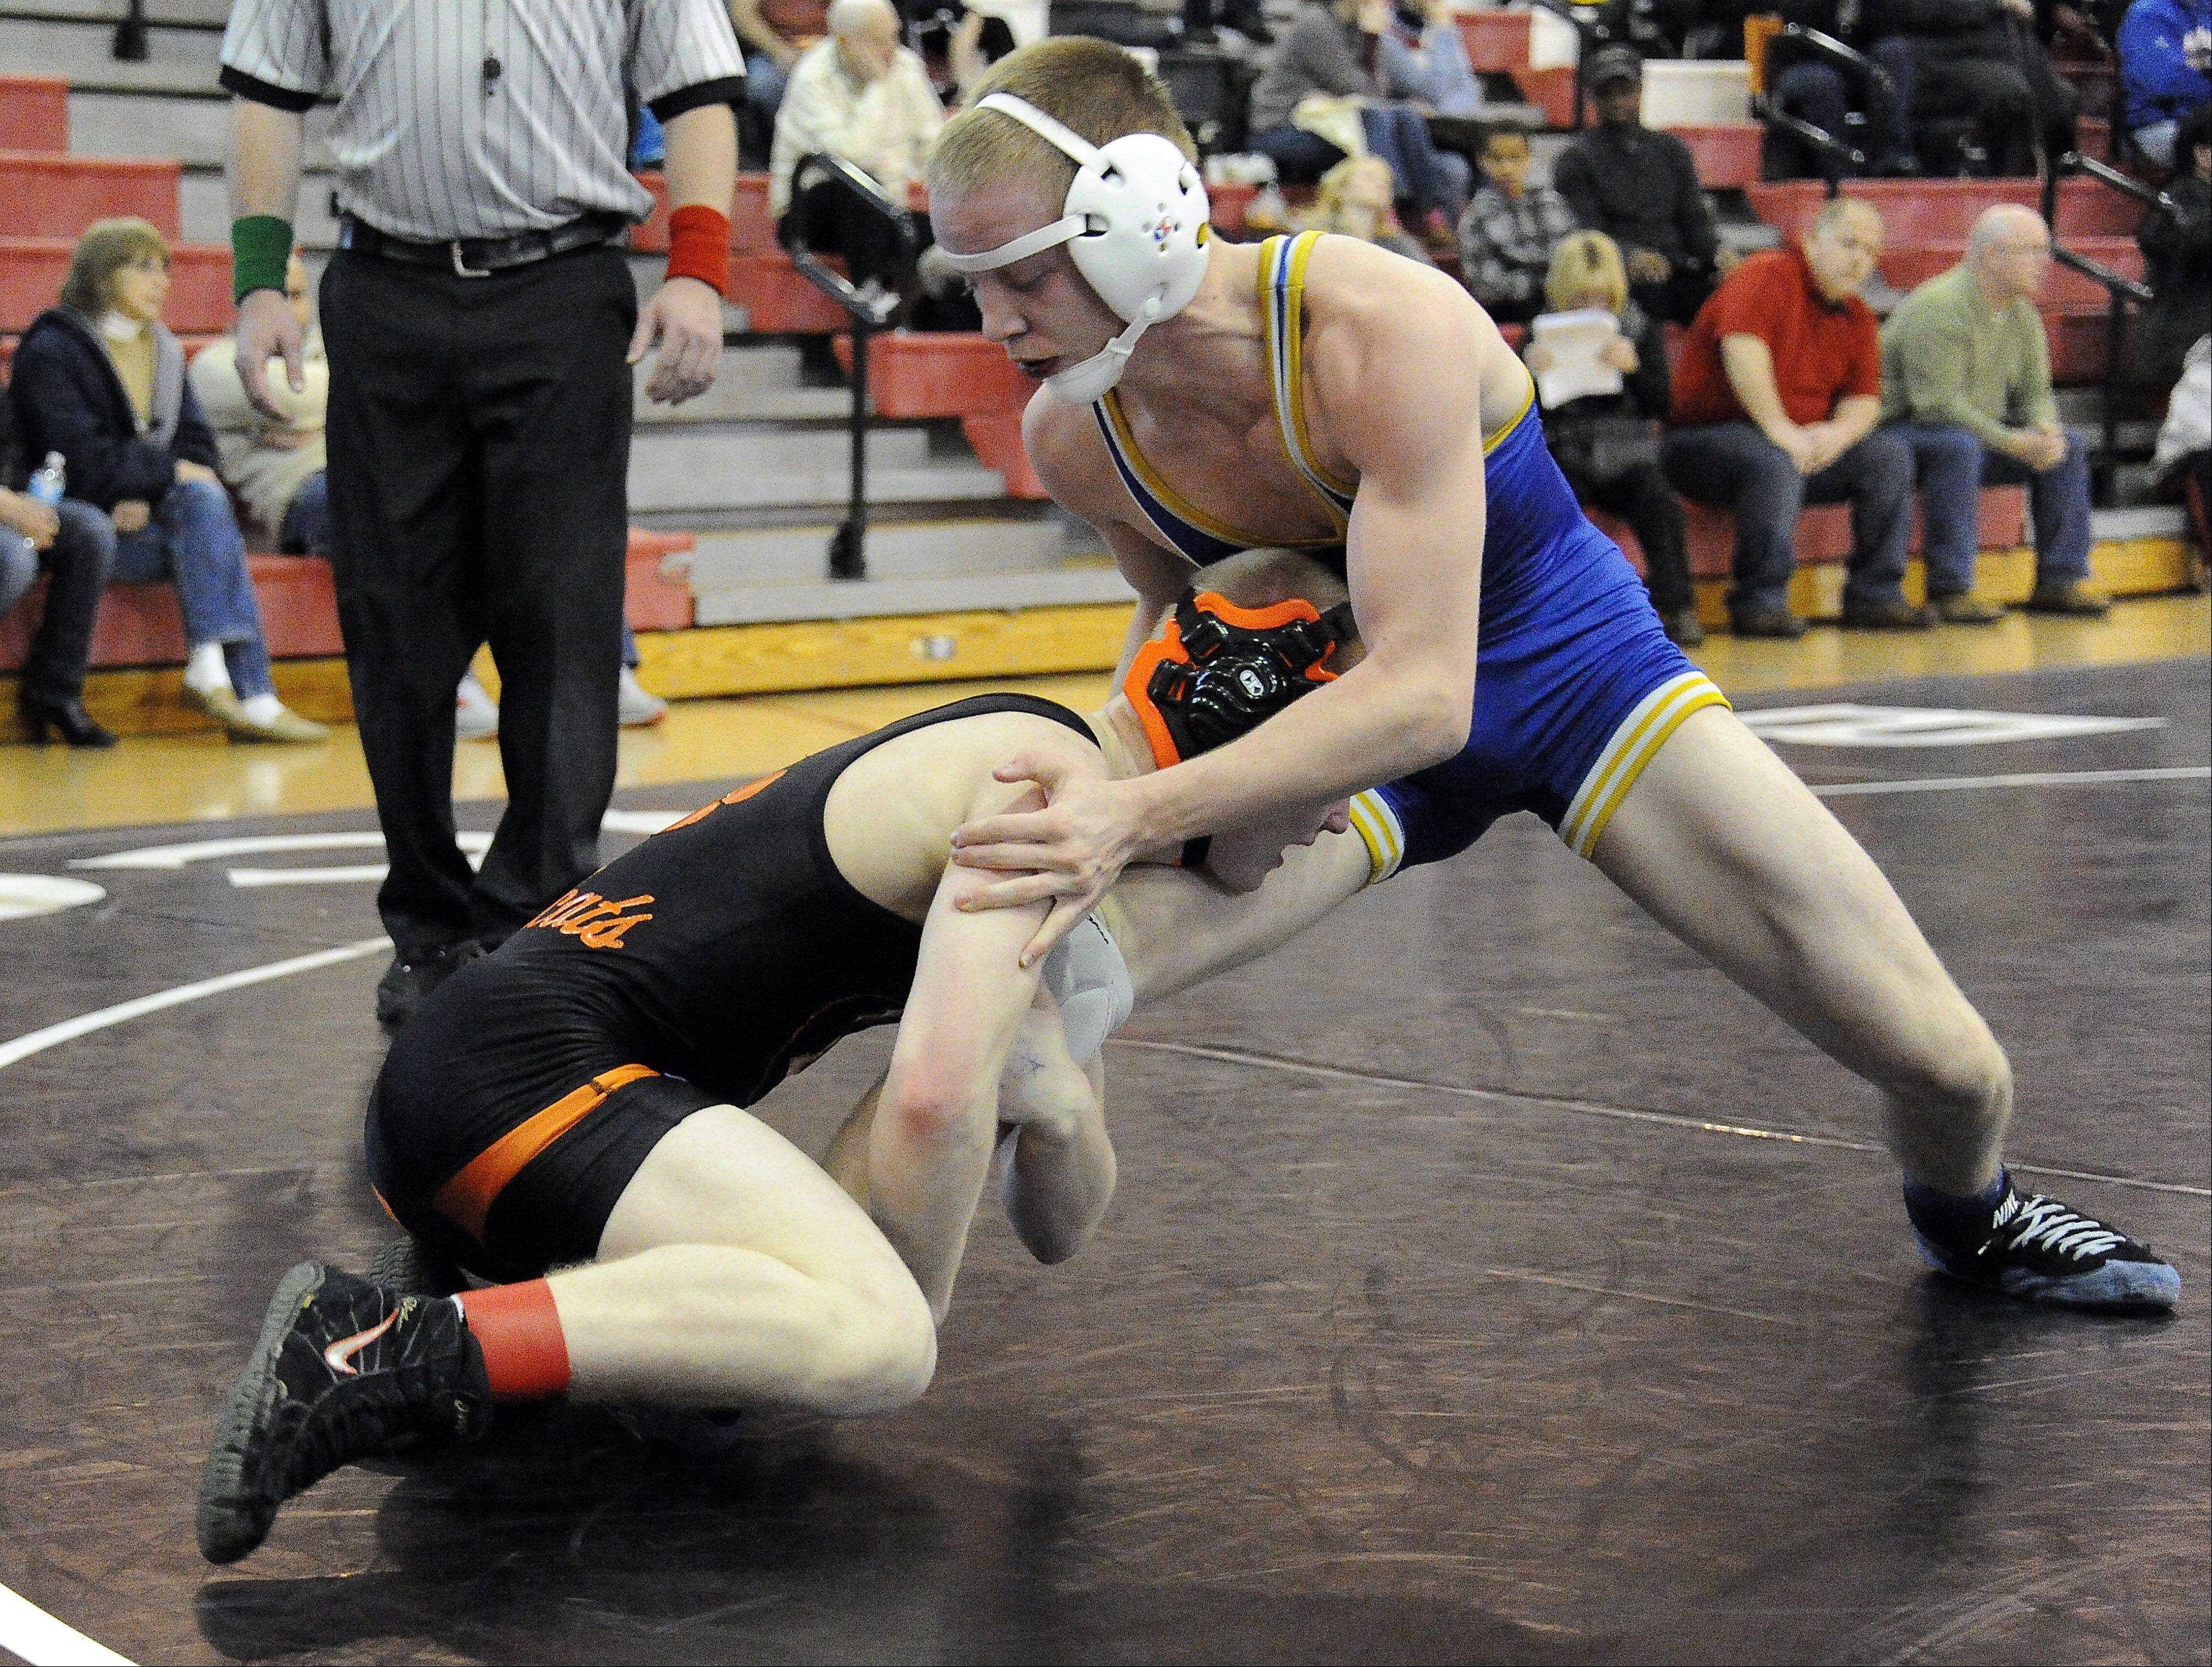 Steve Polakowski of Libertyville handles Kegan Calkins of Wheaton North at 120 pounds during the 22nd Annual Moore/Prettyman Wrestling Invitational at Barrington High School on Saturday.